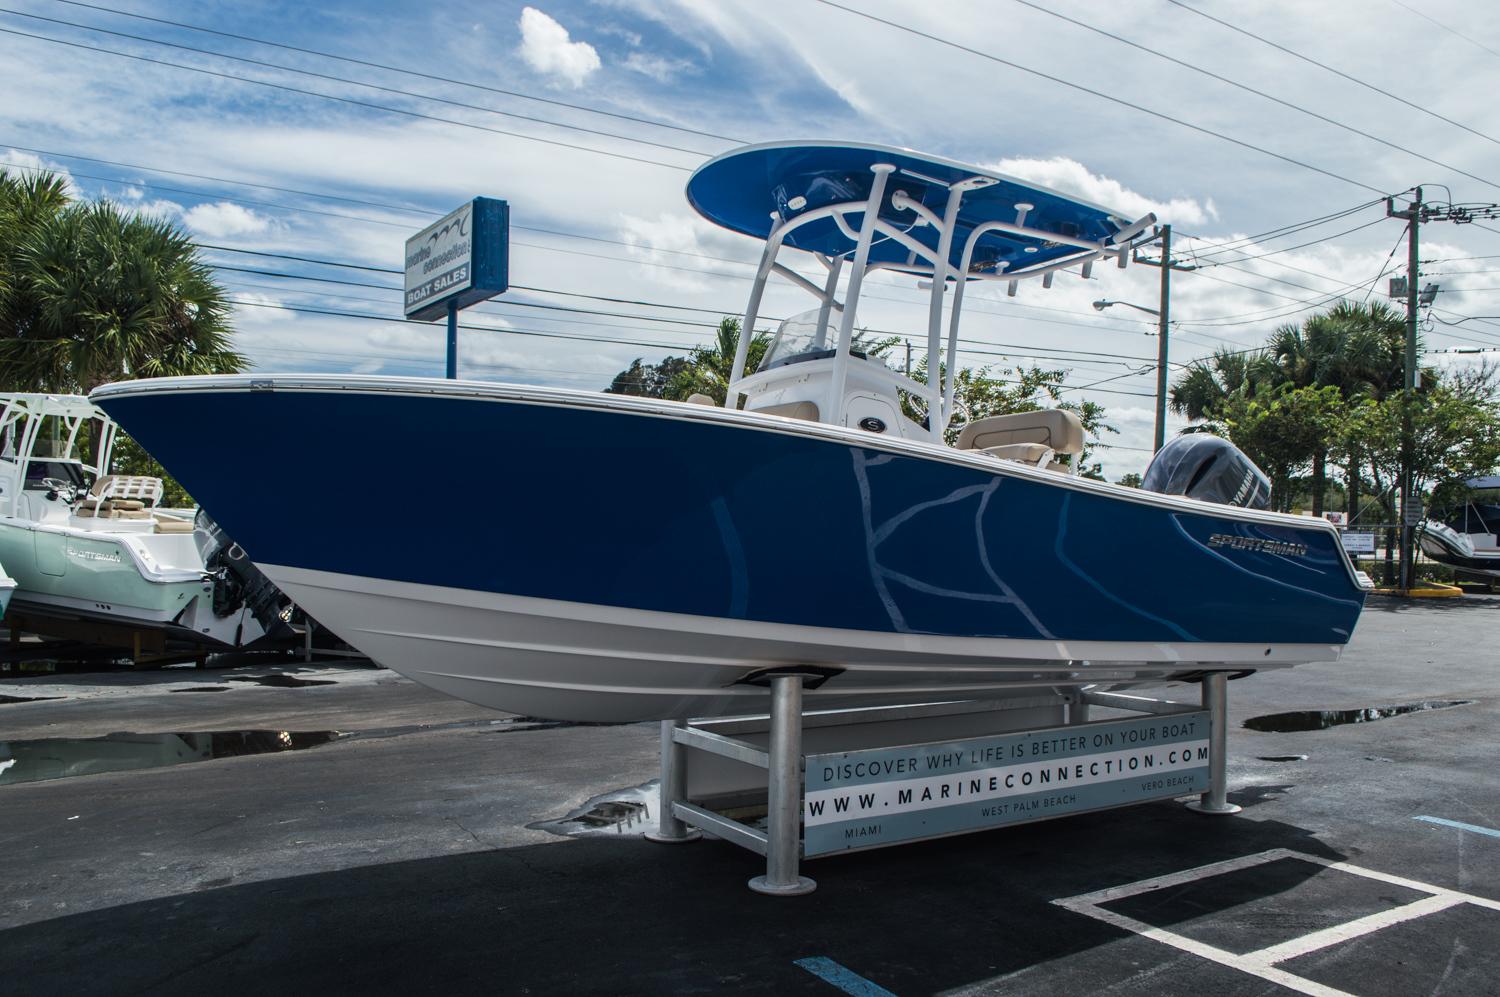 Thumbnail 3 for New 2016 Sportsman Open 212 Center Console boat for sale in Miami, FL